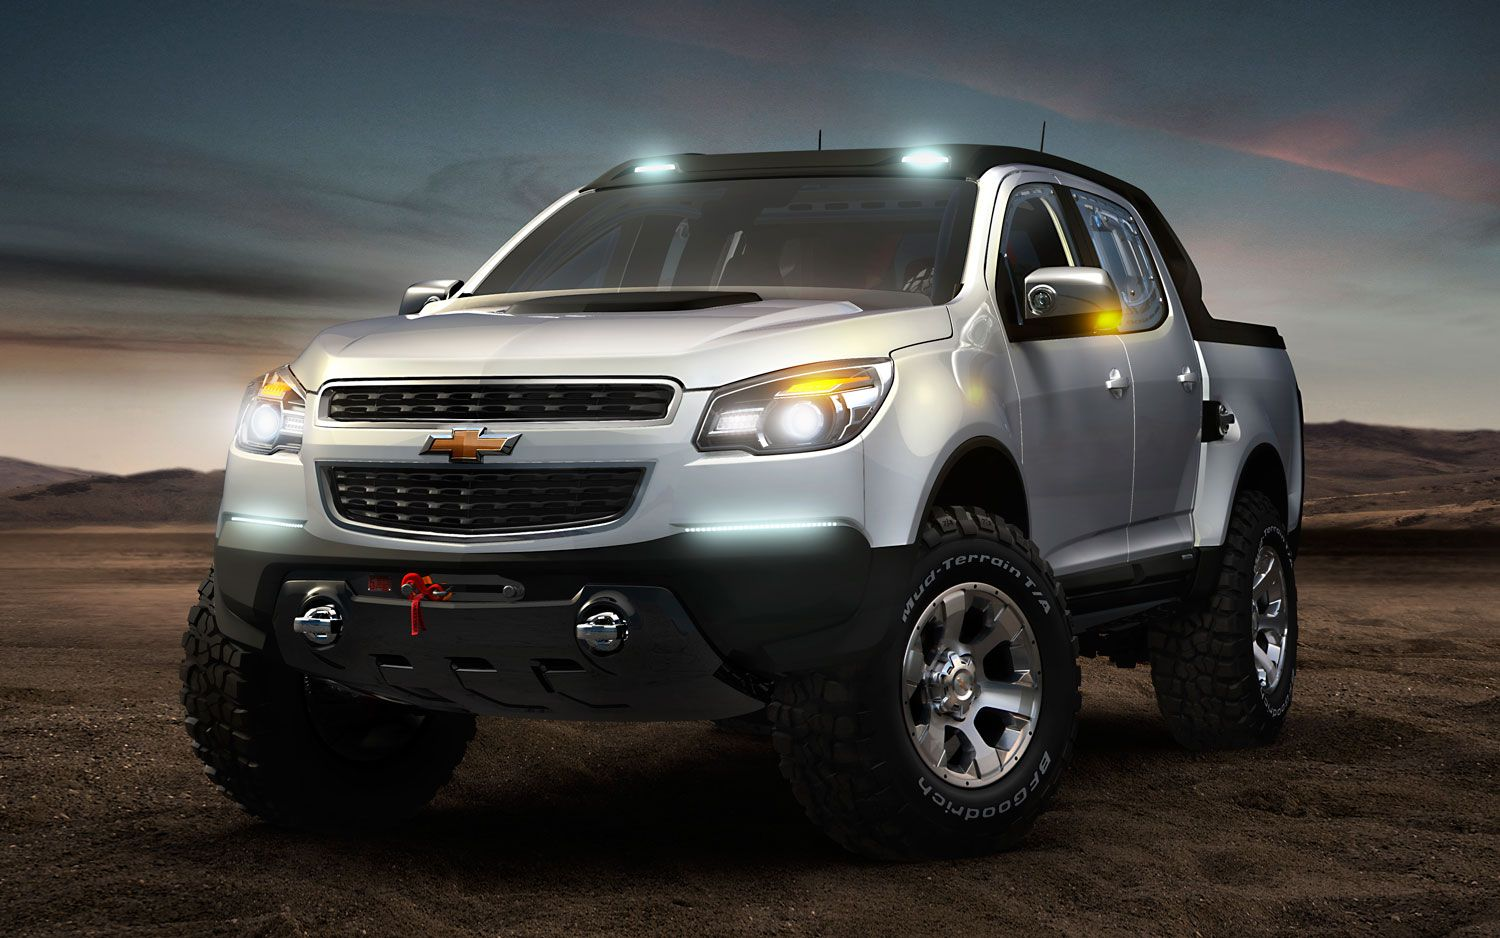 All Chevy chevy concepts : Chevy Colorado Concept Truck   Chevy Concepts   Pinterest   Chevy ...